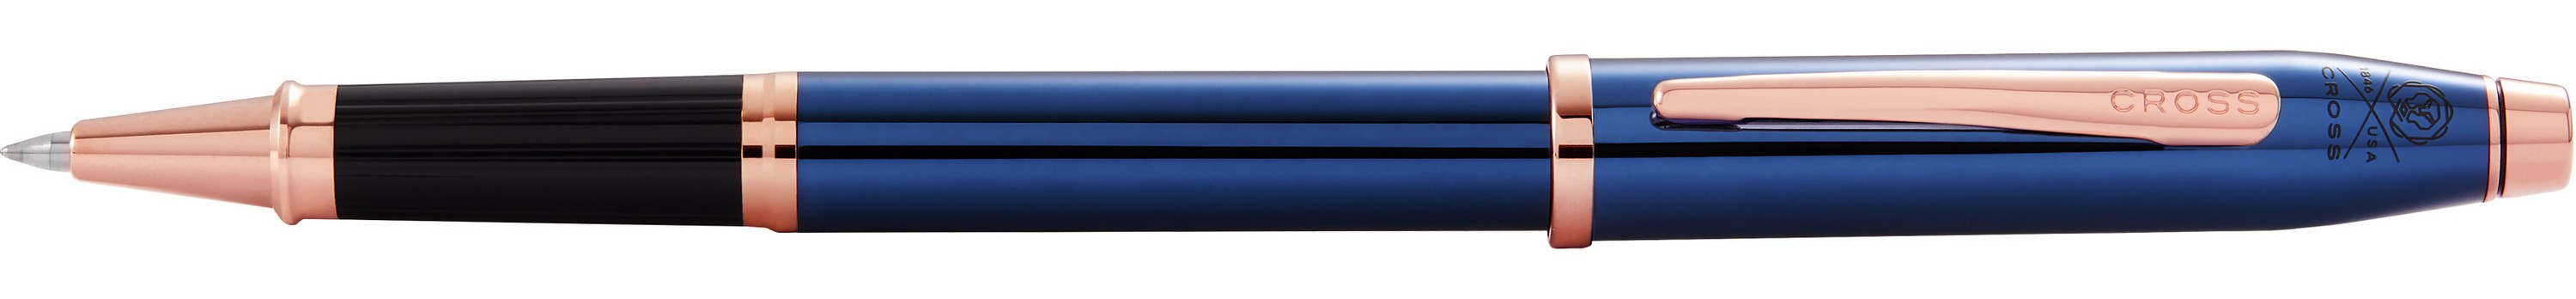 746442840-126 - Century II Translucent Cobalt Blue Lacquer with Rose Gold PVD Rollerball Pen - thumbnail